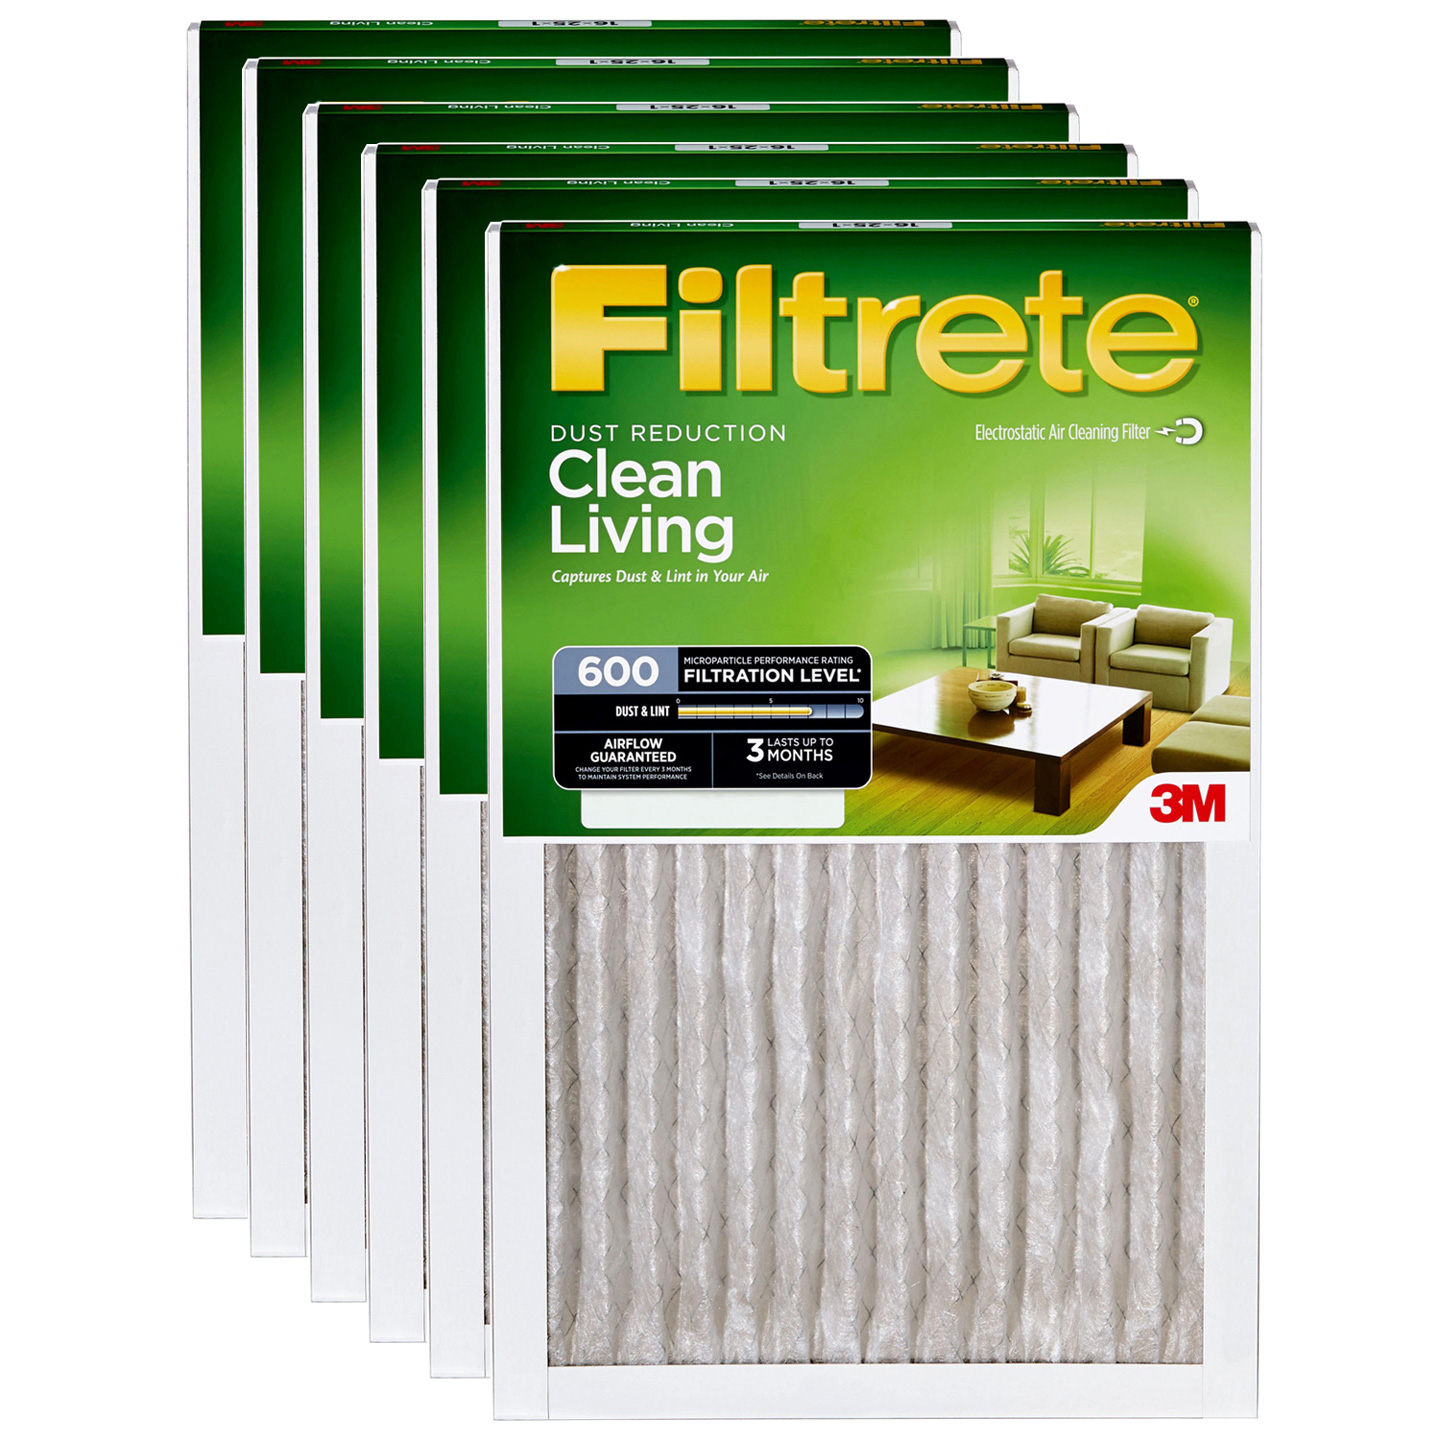 18x18x1 3M Filtrete Dust and Pollen Filter (6-Pack) FILTRETE_DUST_18x18x1_6_PACK